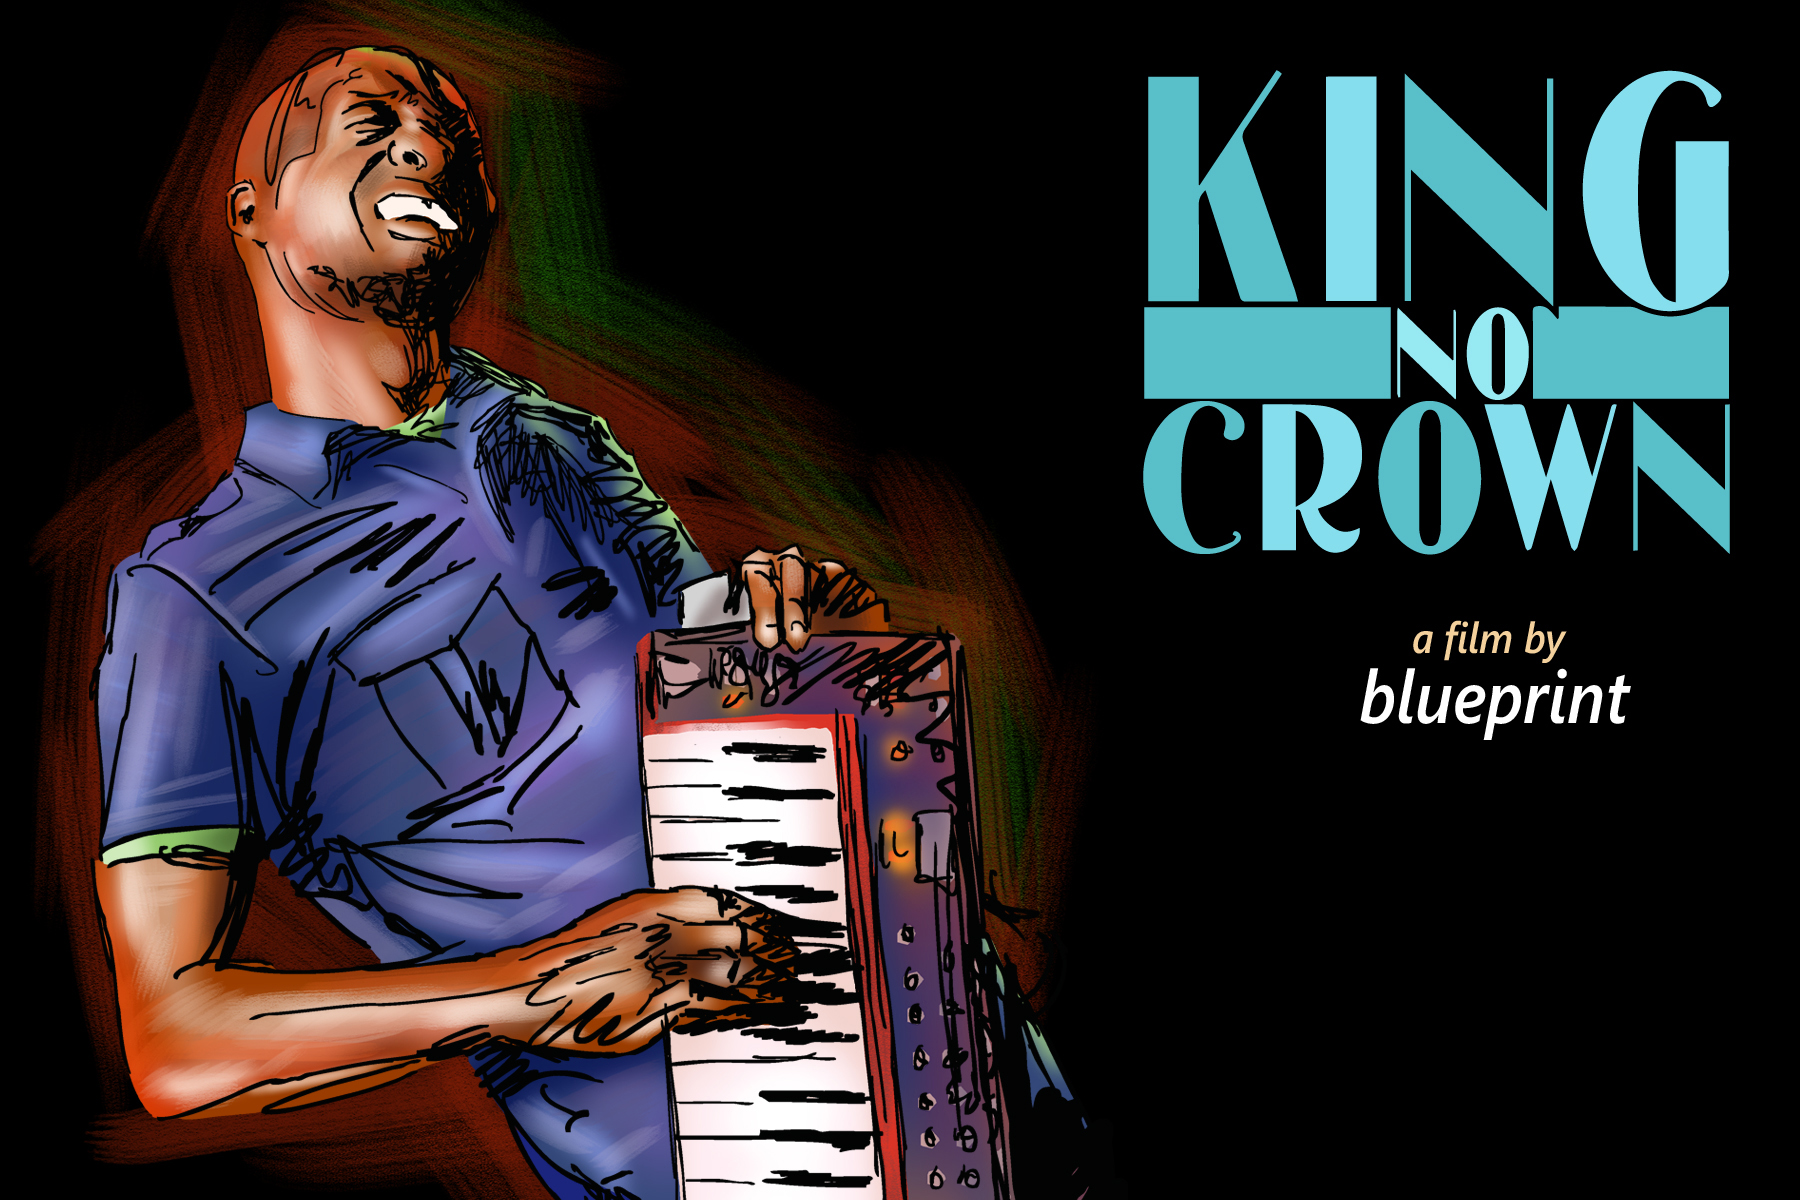 Blog weightless recordings in advance of the release of his upcoming debut film king no crown blueprint has just announced the first two public screenings to be held in august malvernweather Image collections